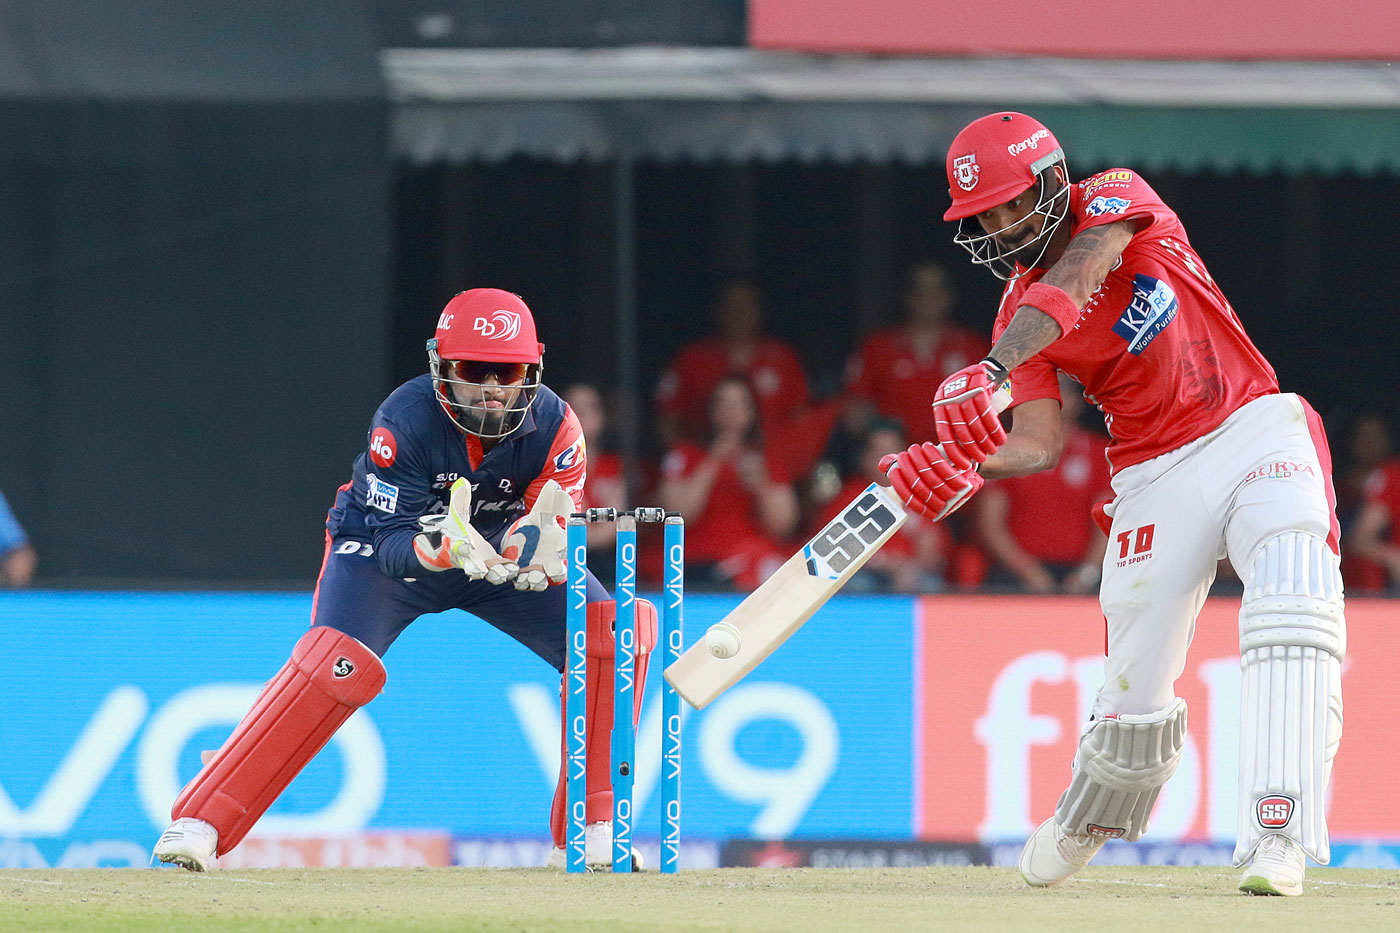 KL Rahul smashes fastest IPL fifty ever, guides Kings XI Punjab home